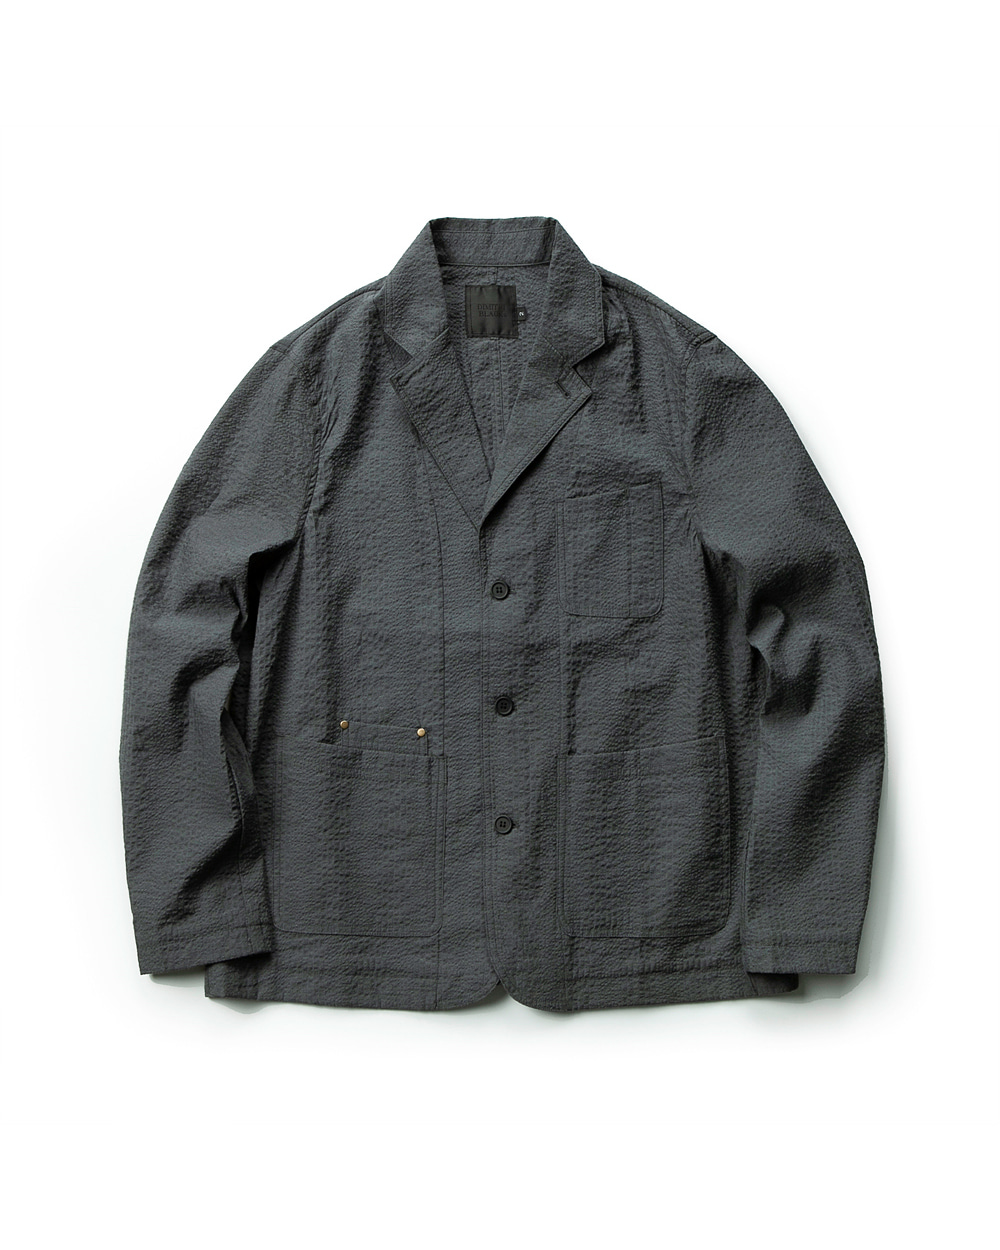 SEERSUCKER SHOOTING JACKET GRAY